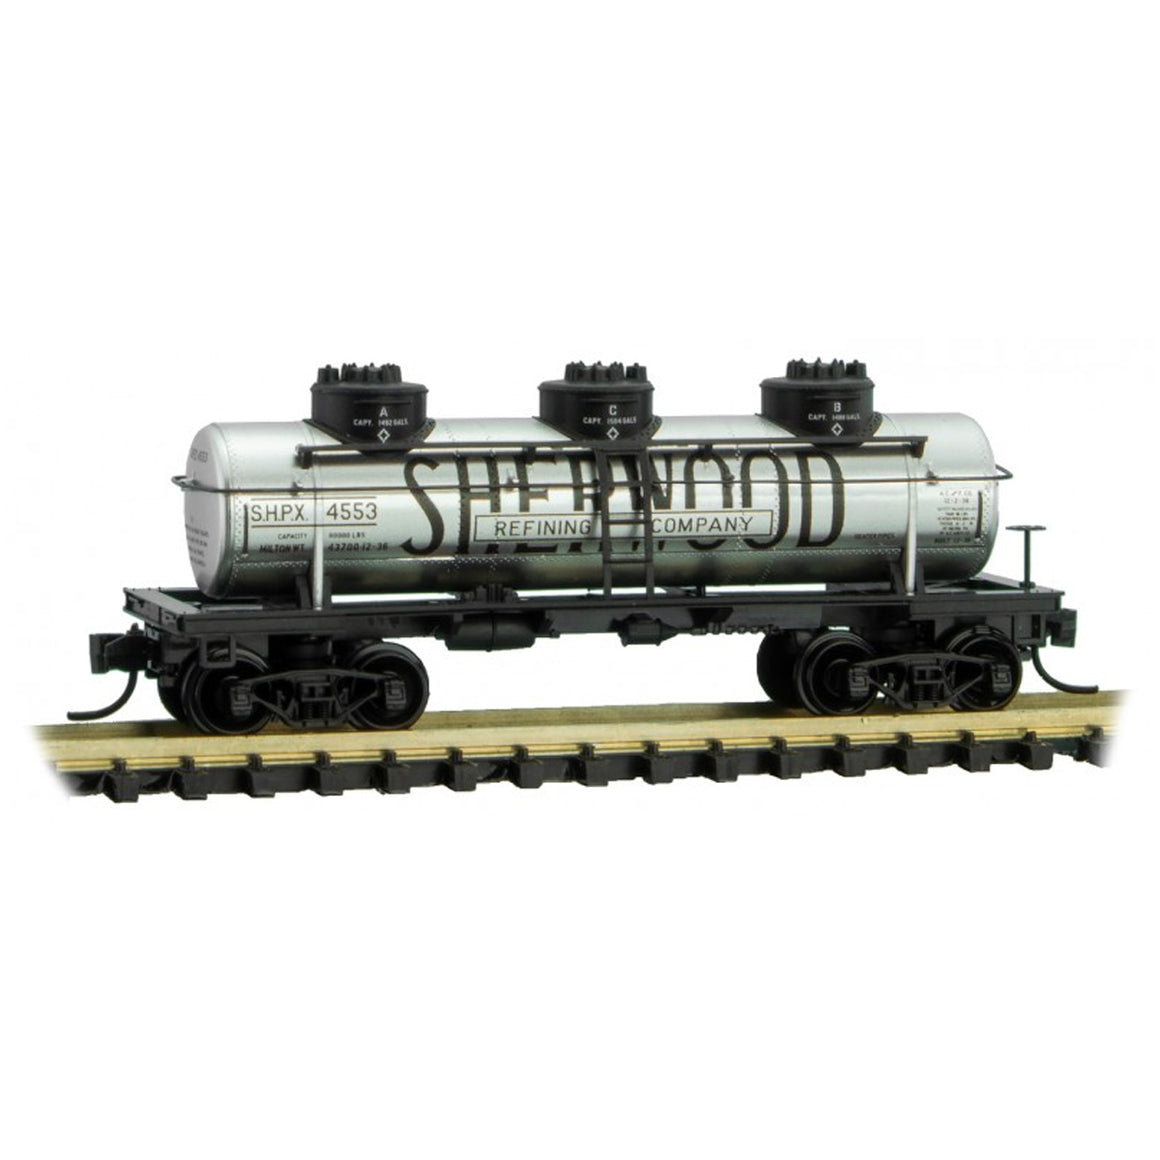 N Scale: 3 Dome Tank Car - Sherwood Refining